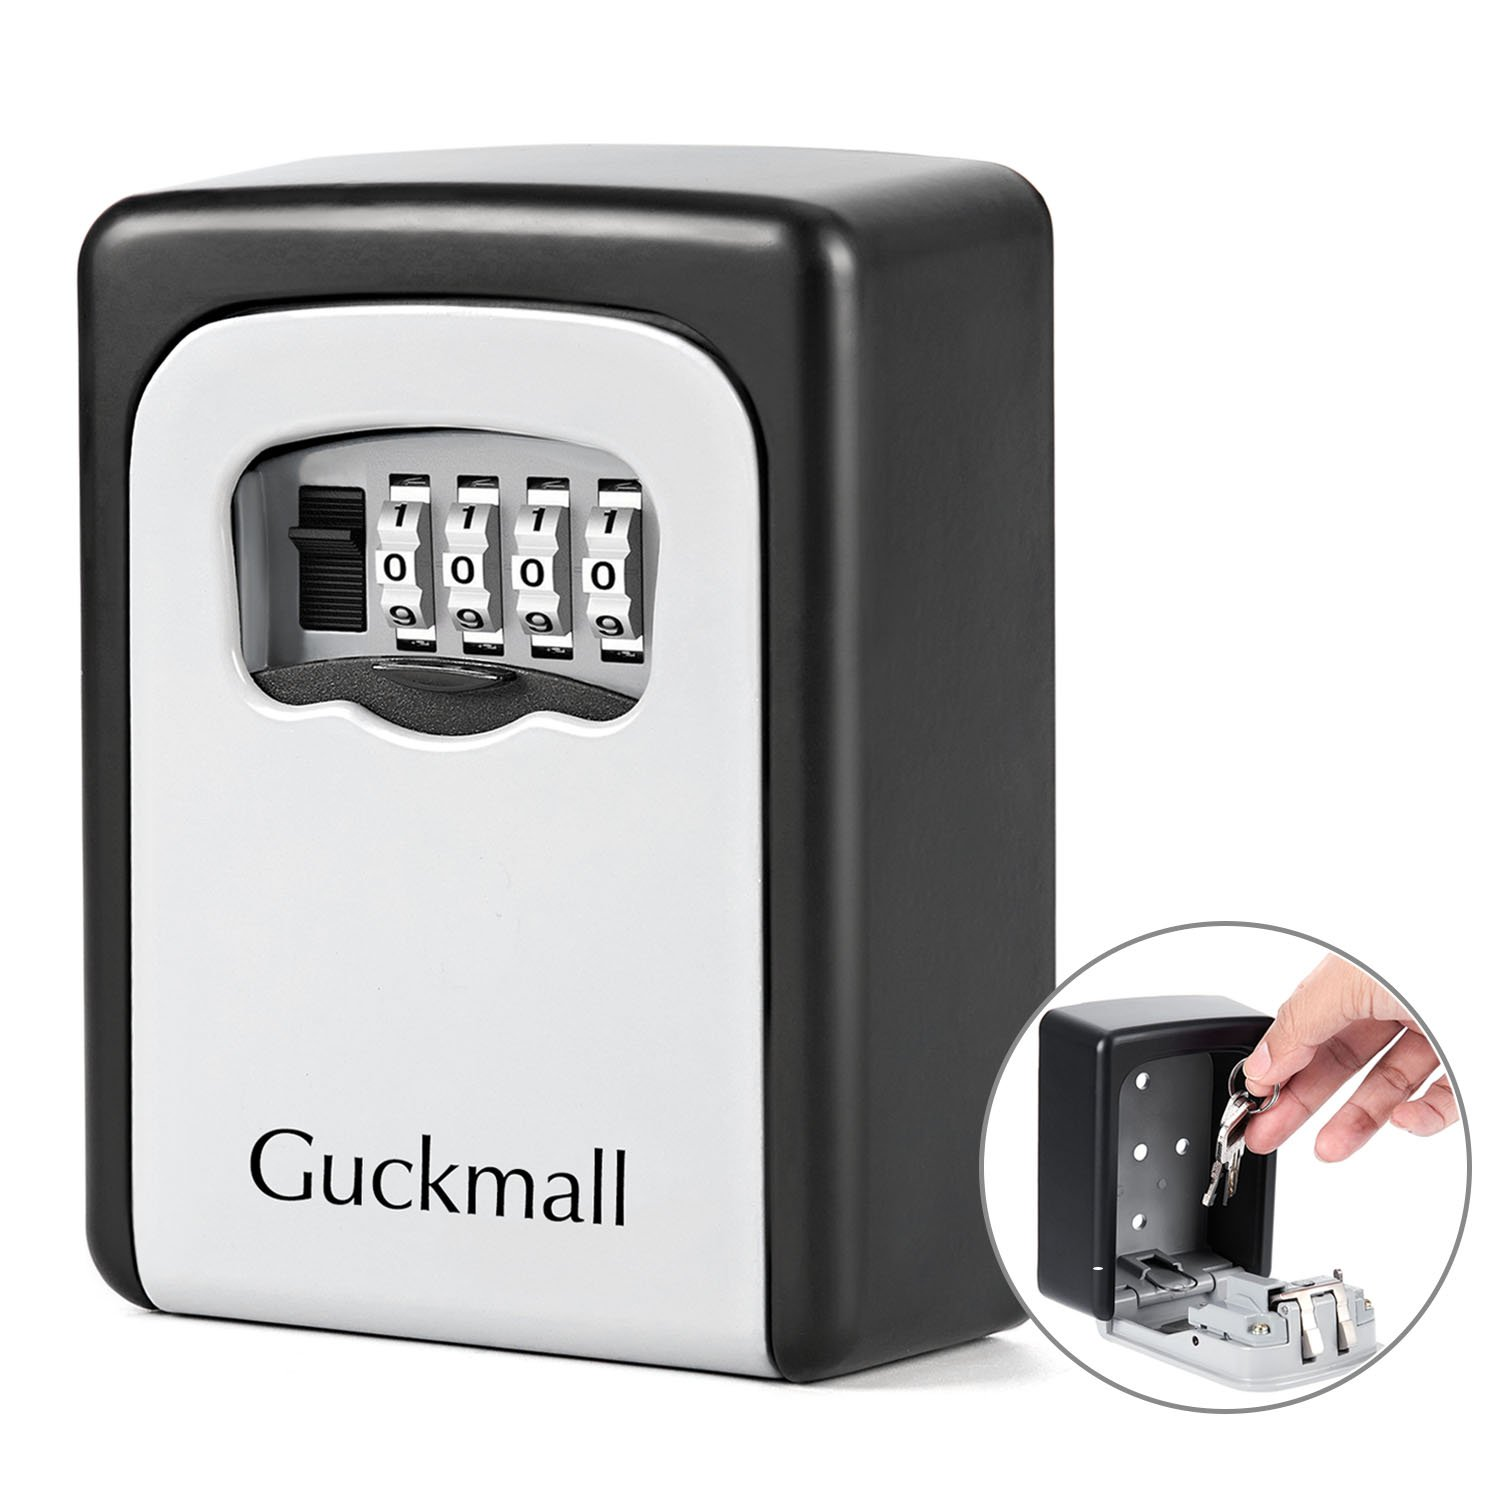 Guckmall Key Storage Lock Box, 4-Digit Combination Lock Box, Wall Mounted Stainless Steel Key Safe Box Weatherproof Indoor Outdoor